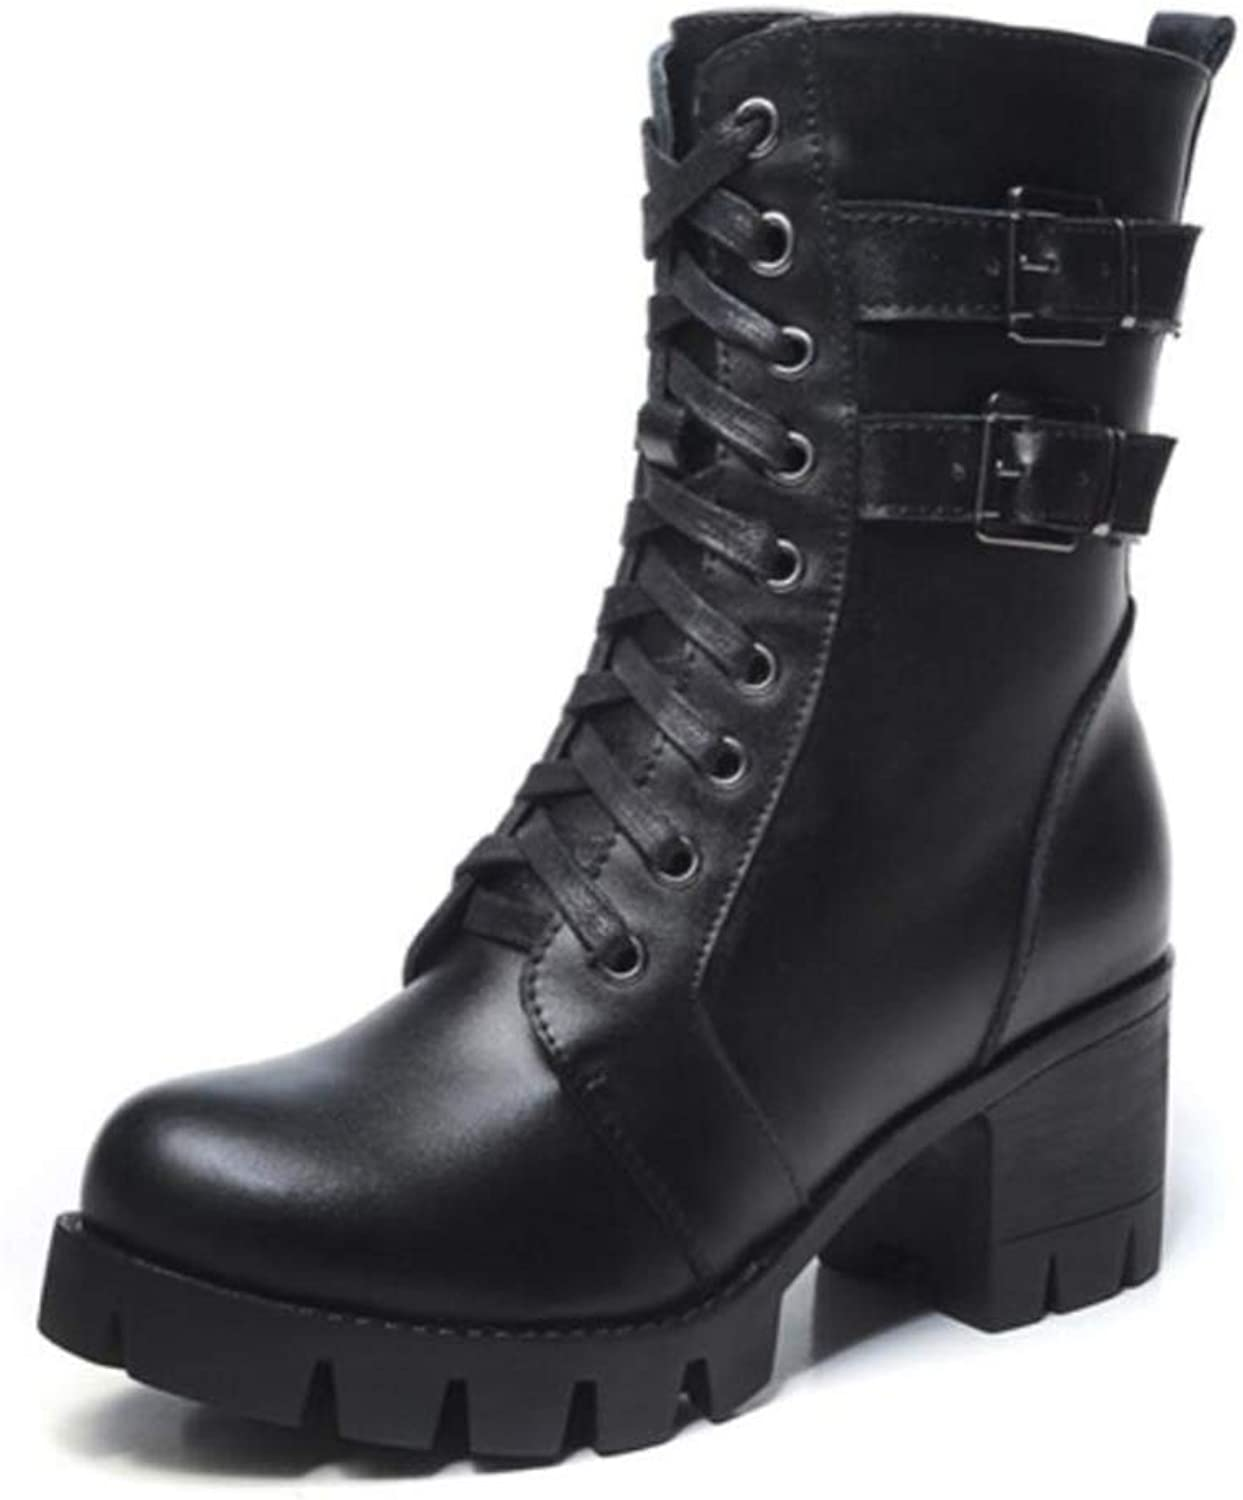 Shiney Women's Martin Boots Plus Velvet Round Head Chunky Heel Thick Leather Boots Fashion Autumn Winter Short Boots